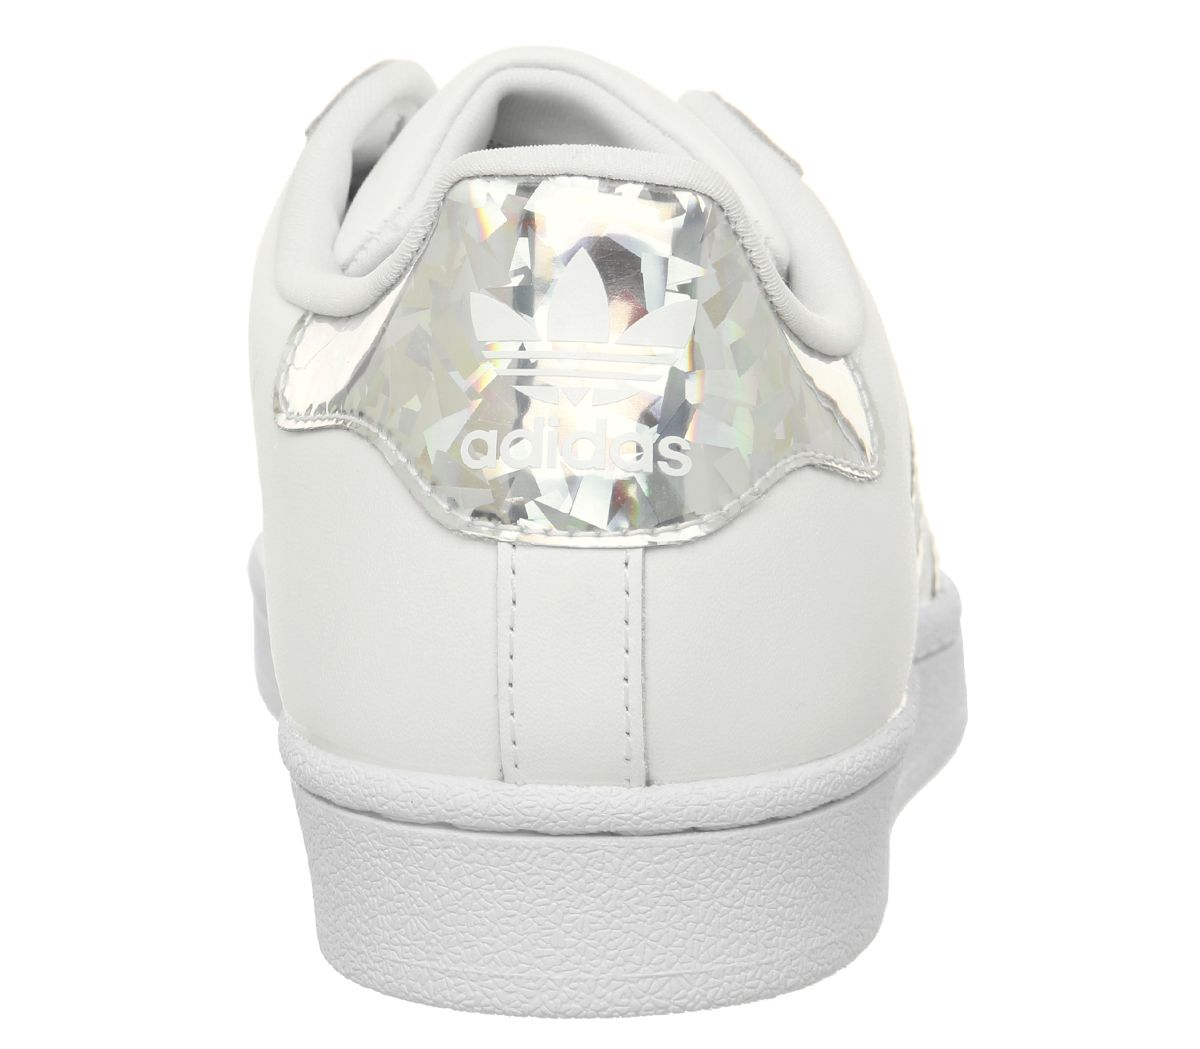 93236cd68e7 Womens Adidas Superstar Gs Trainers White Silver Holographic ...